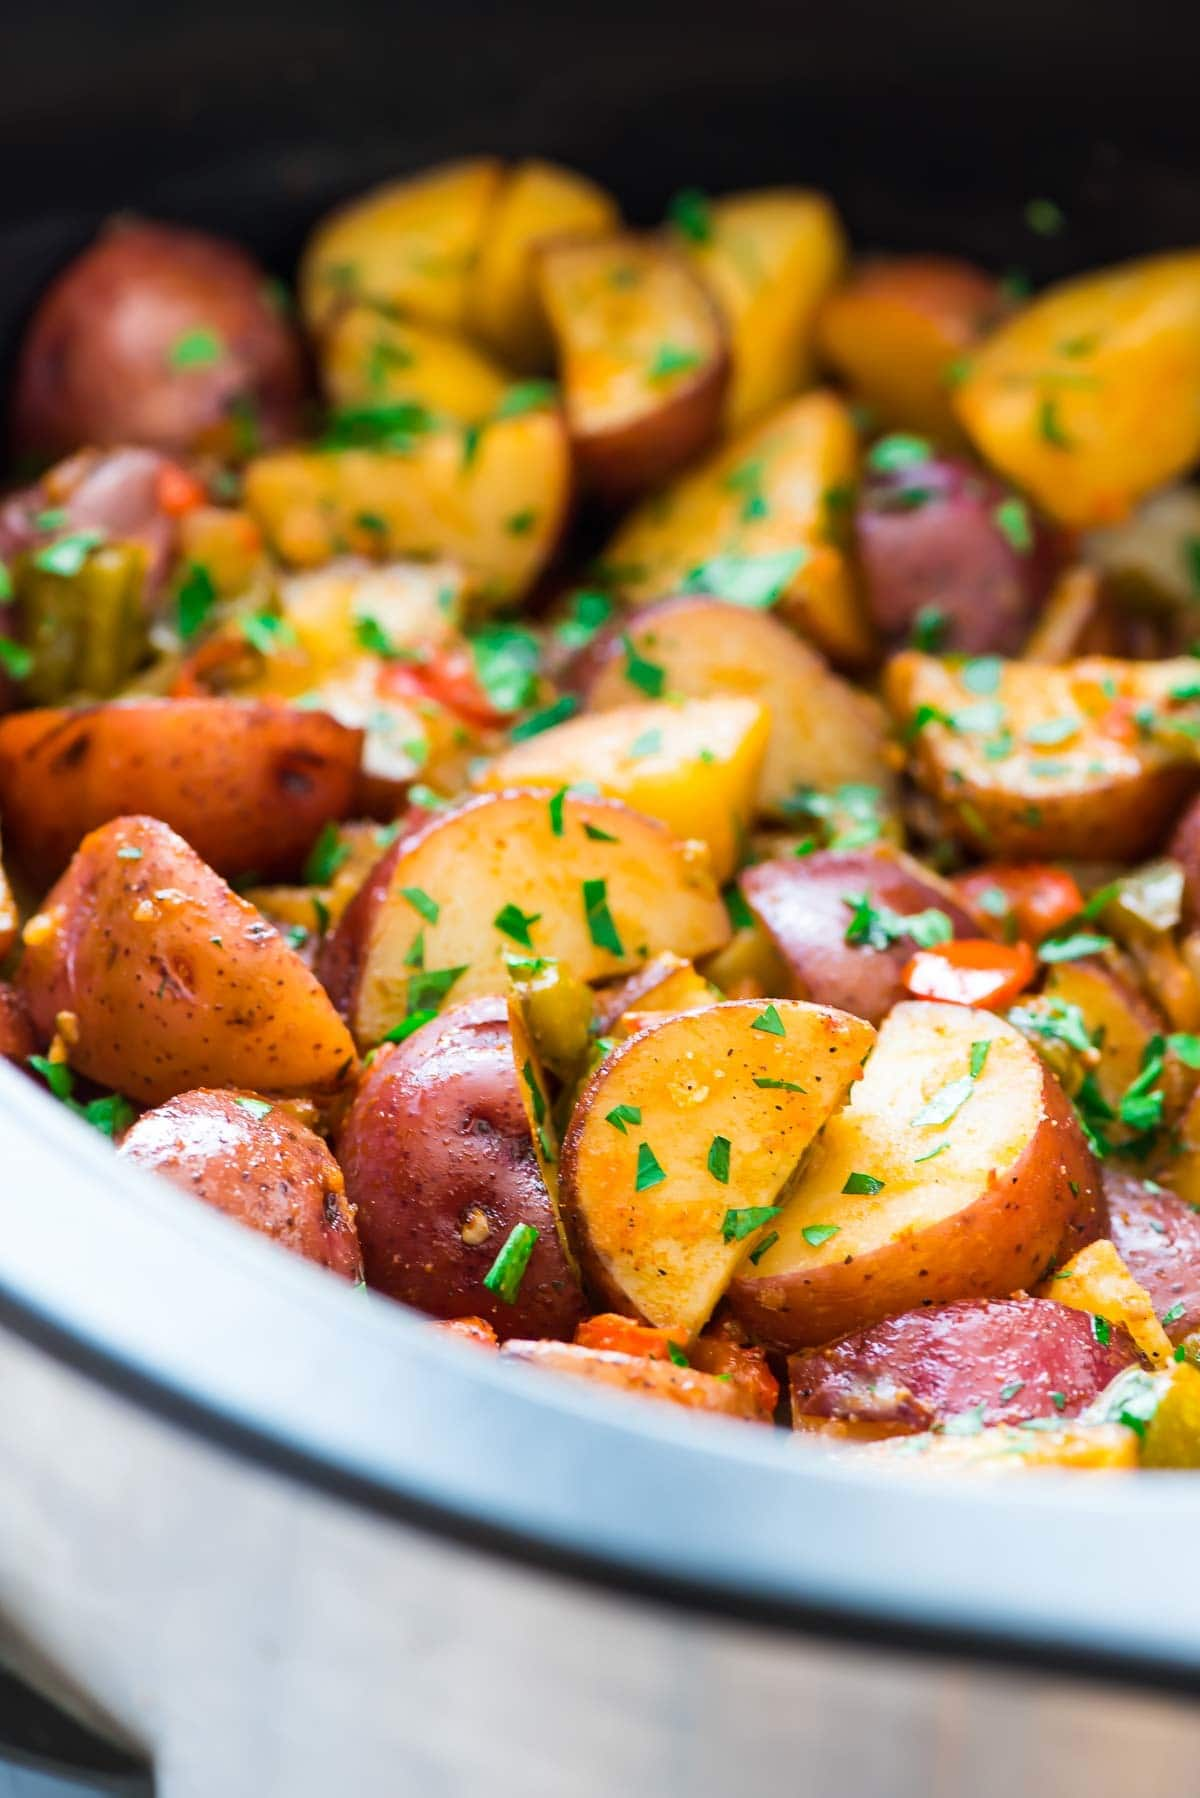 Easy Crockpot Breakfast Potatoes – Crispy, tender potatoes with peppers, and onions. A better way to make home fries! Recipe at wellplated.com | @wellplated